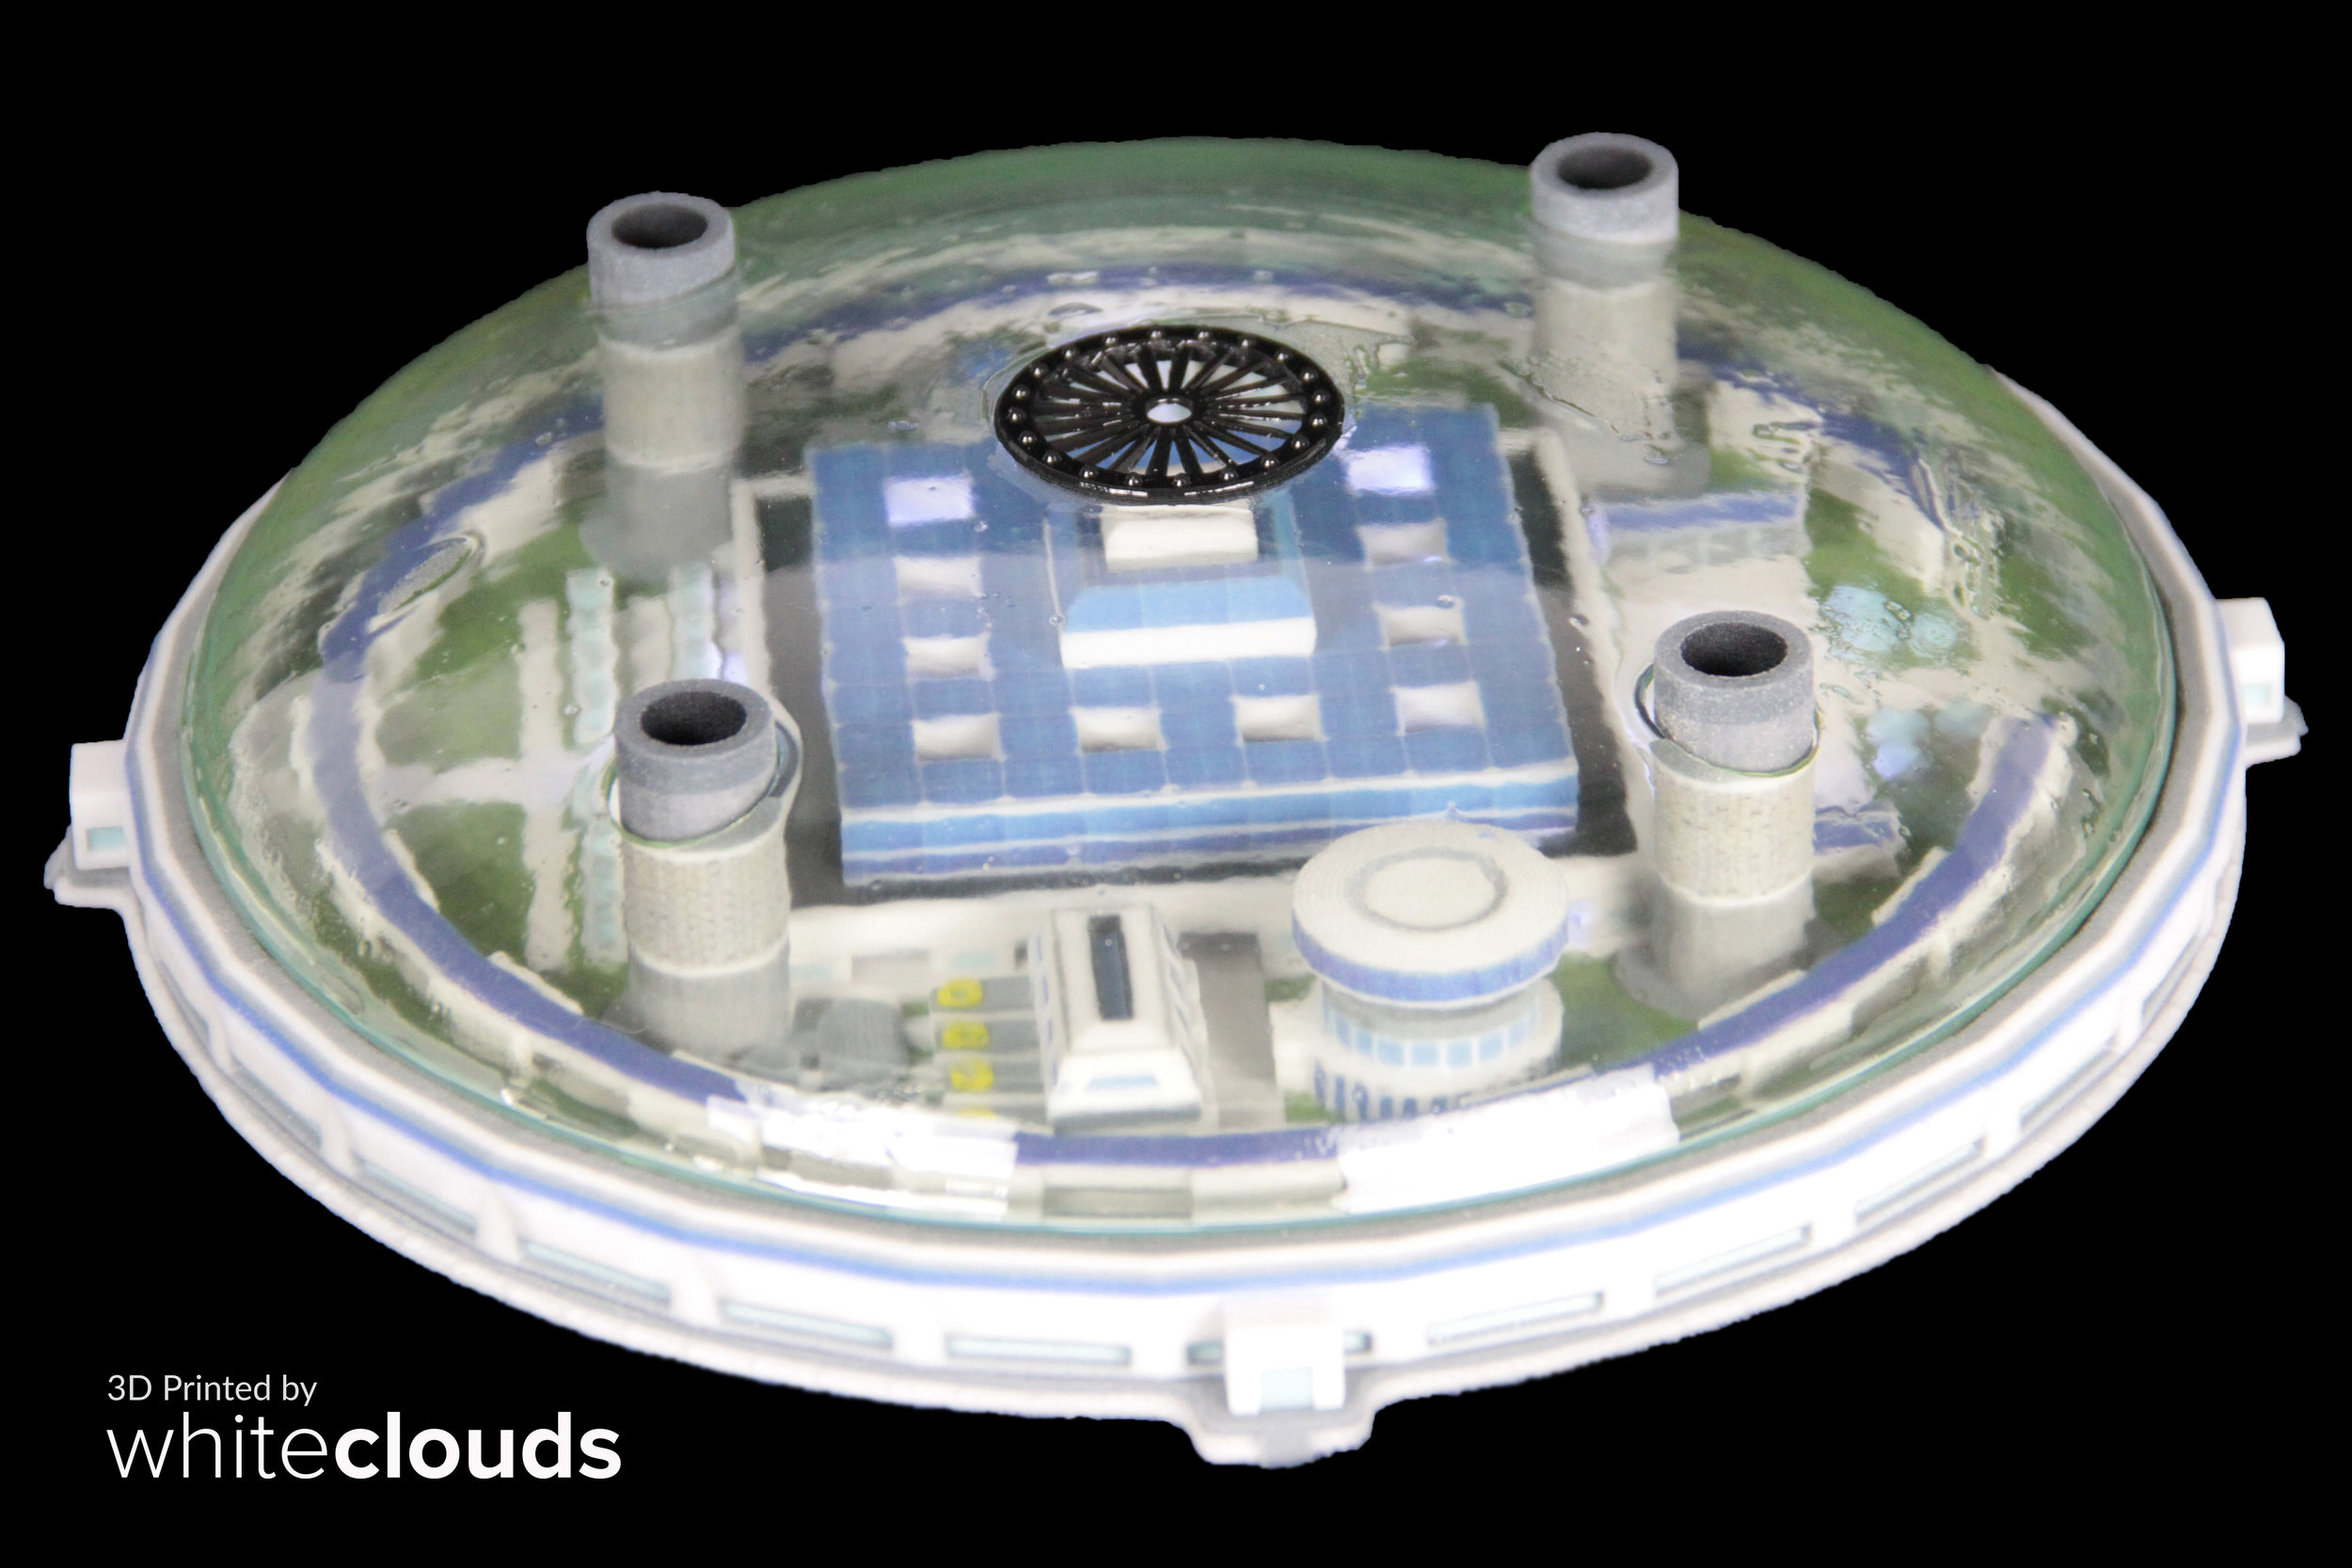 3D-Printed-WhiteClouds-Domed-Facility-Architectural-FutureCities-1.jpg